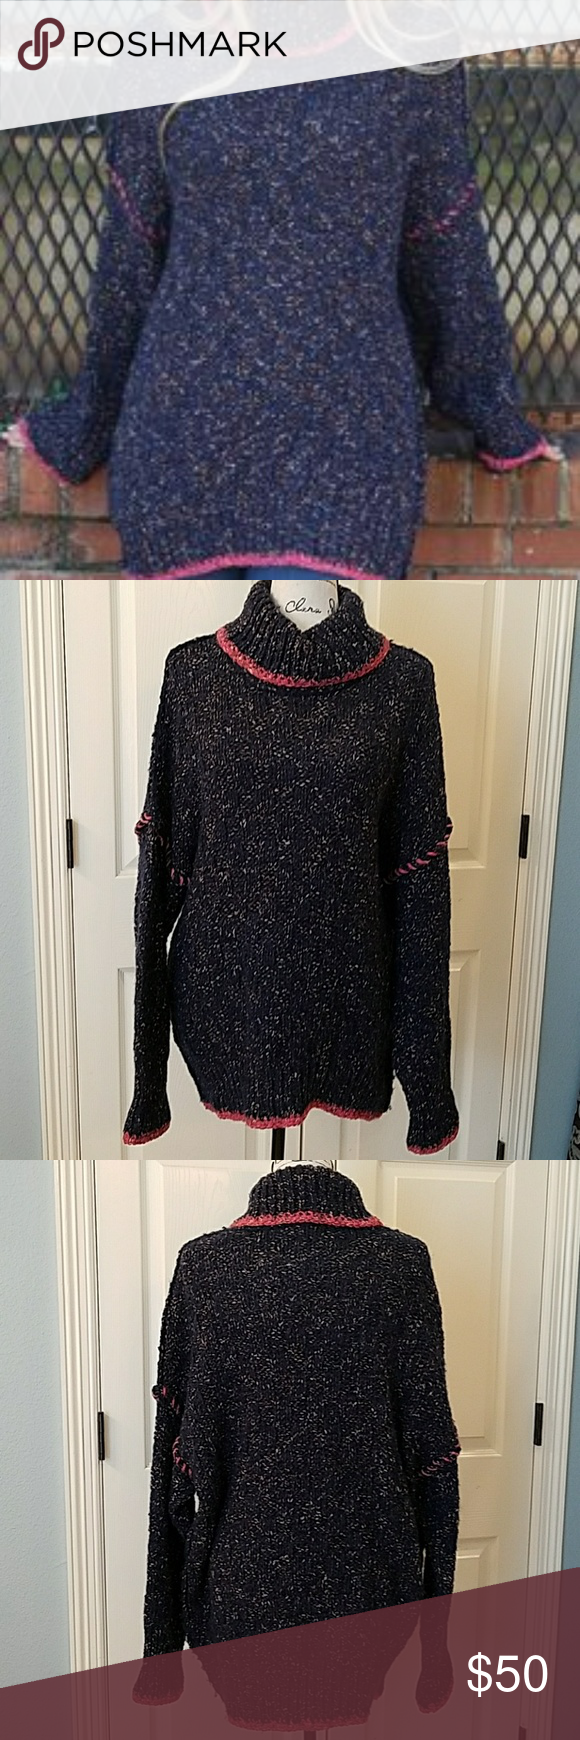 Free People Ziggy Tunic Sweater EUC | Mock turtle, Tunic sweater ...